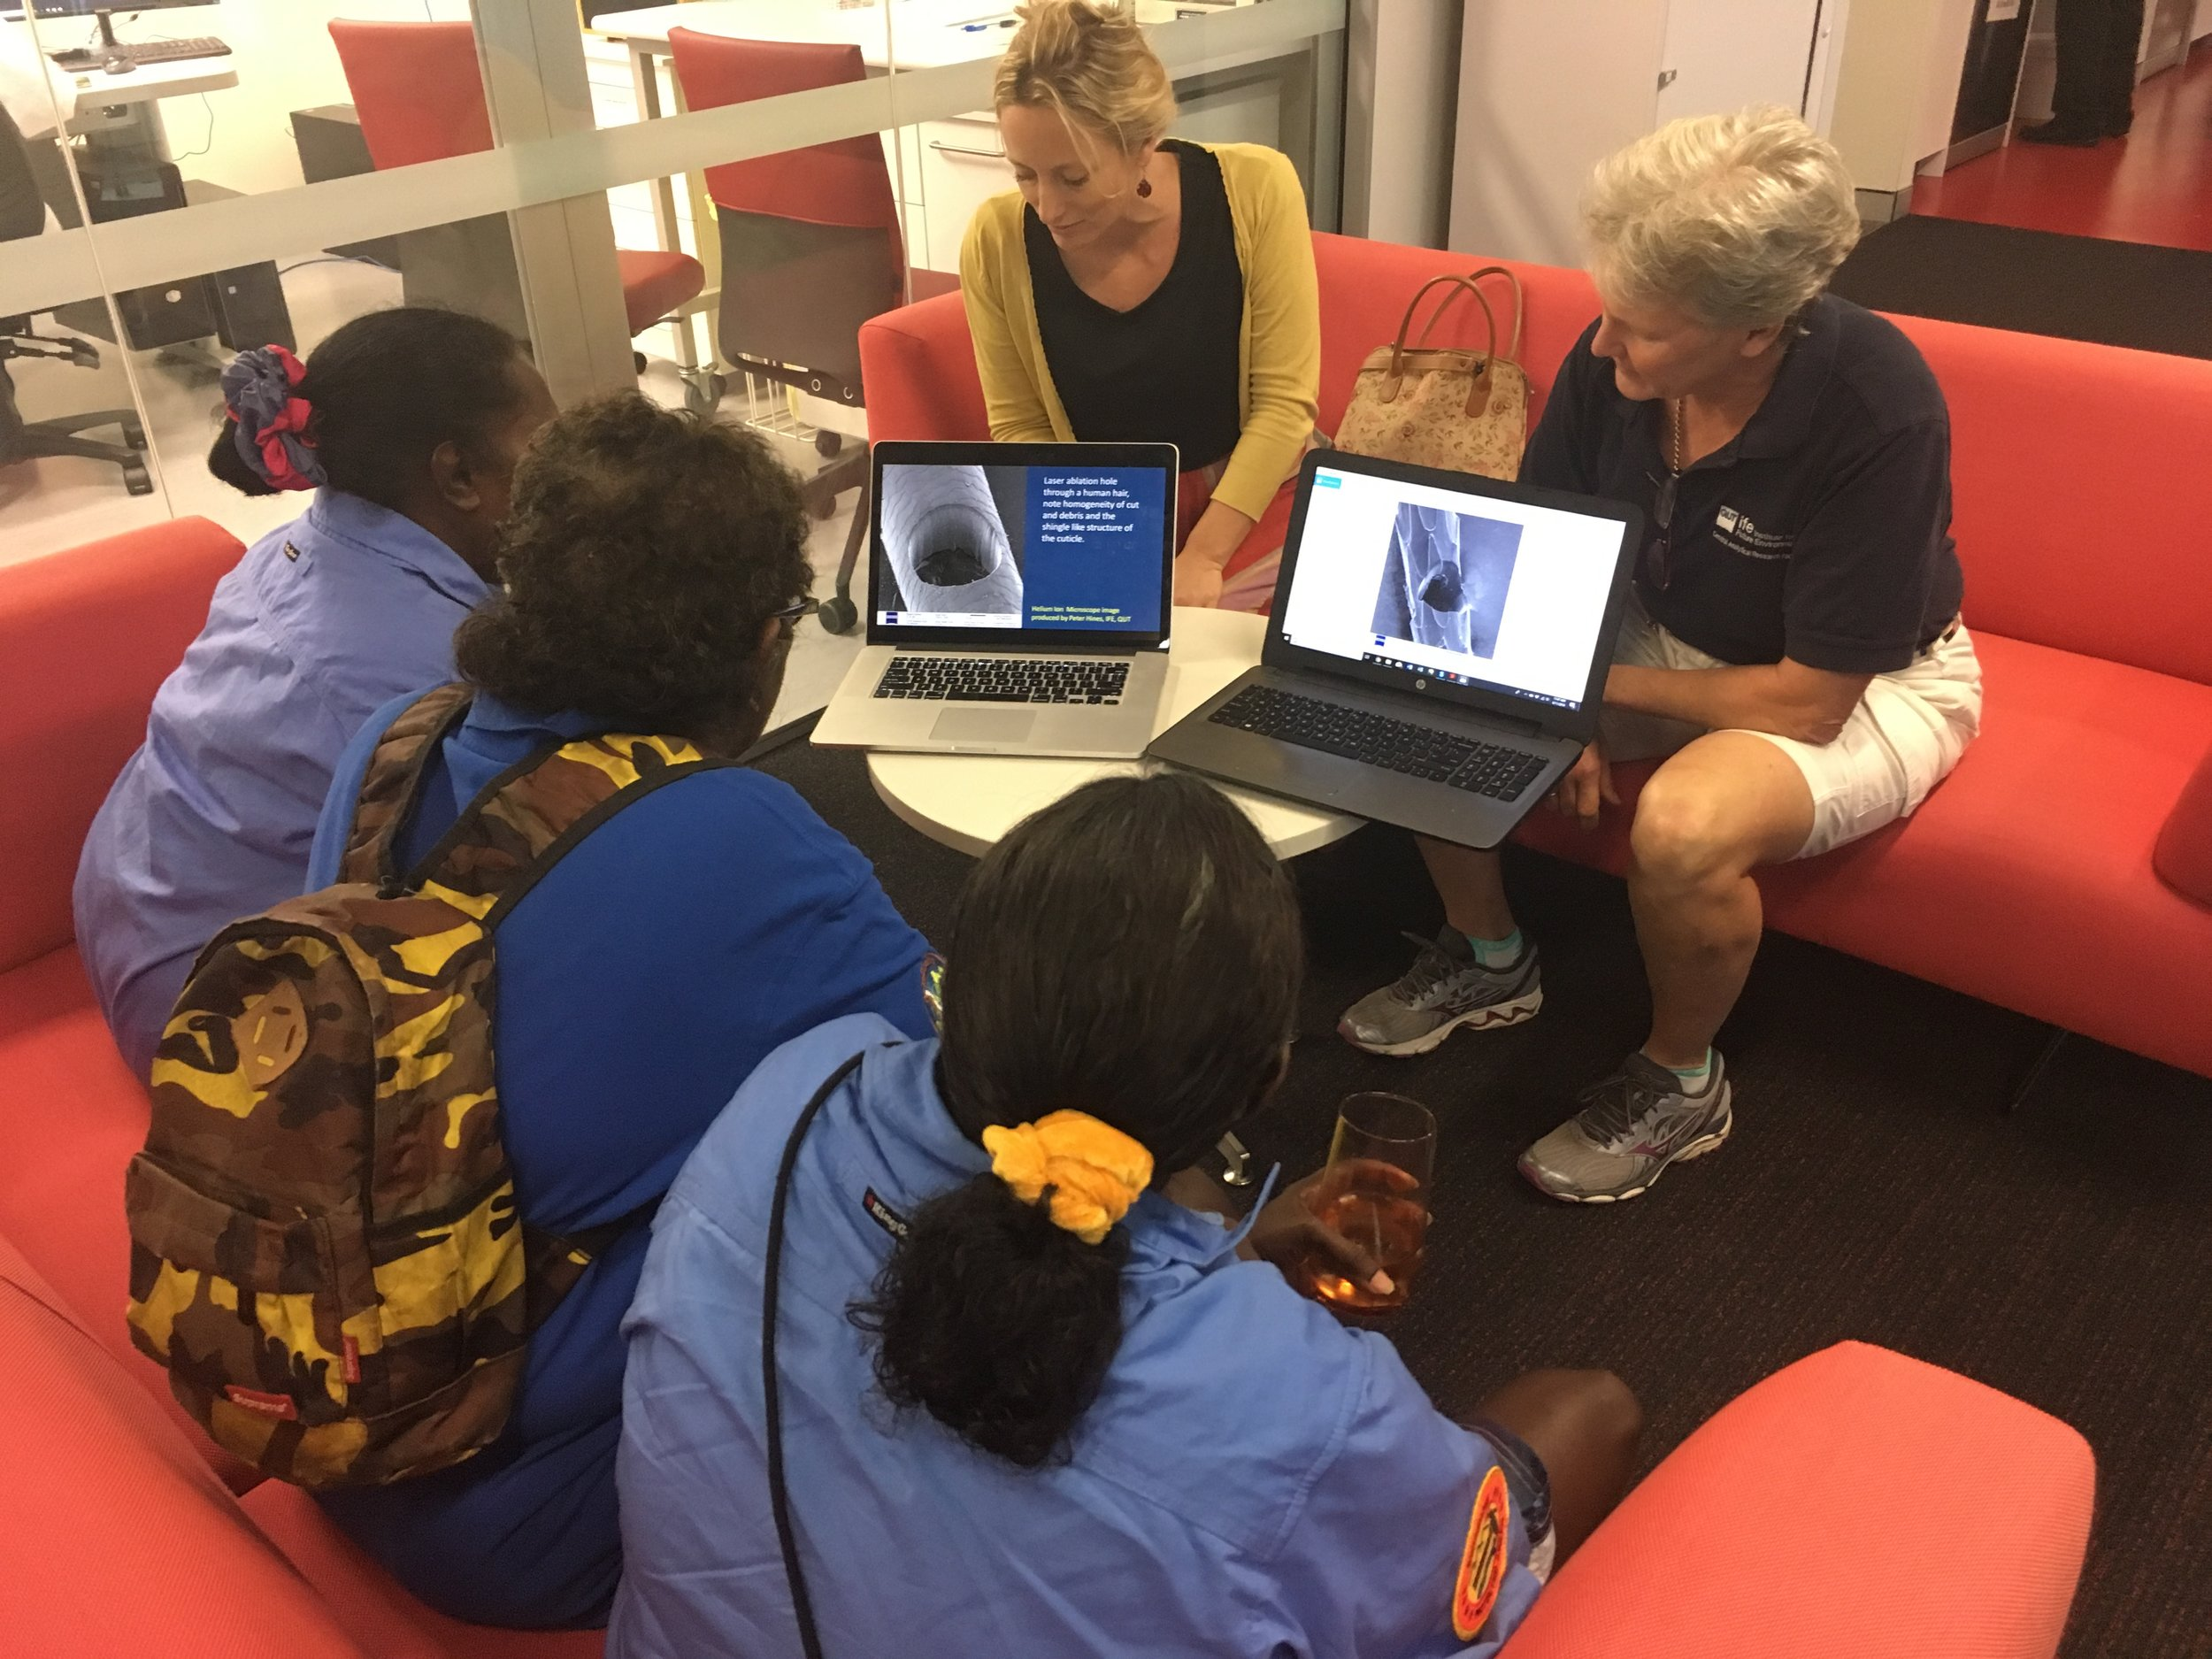 Photo: Left, Charlotte Allen (back right) explaining how scanning helium ion microscopy works on human and animal hair on Groote, to Jocelyn Yantarrgna, Catherine Mamarika, Cassandra Mamarika & Gwendolyn David.